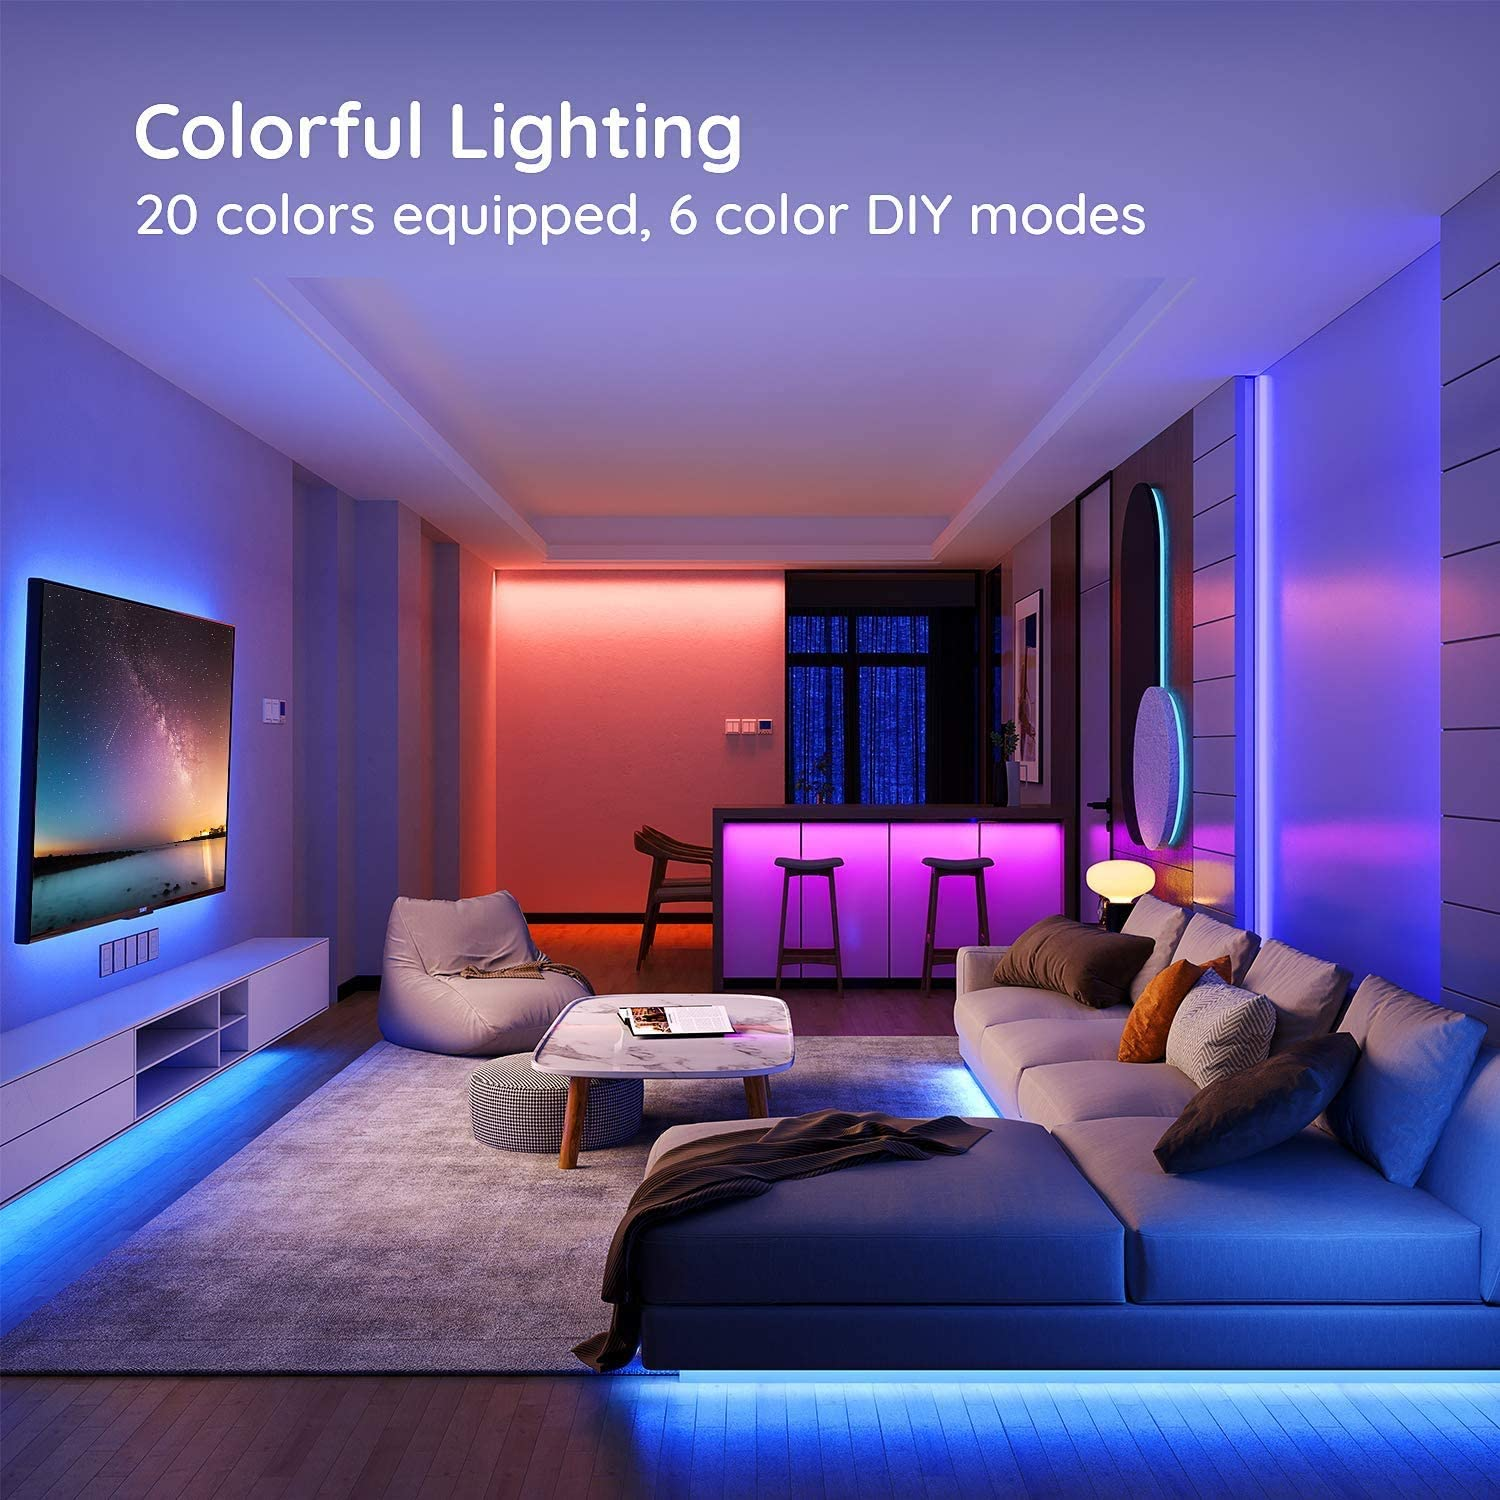 Govee LED Strip Lights, 16.4FT RGB LED Lights with Remote Control, 20 Colors and DIY Mode Color Changing LED Lights, Easy Installation Light Strip for Bedroom, Ceiling, Kitchen